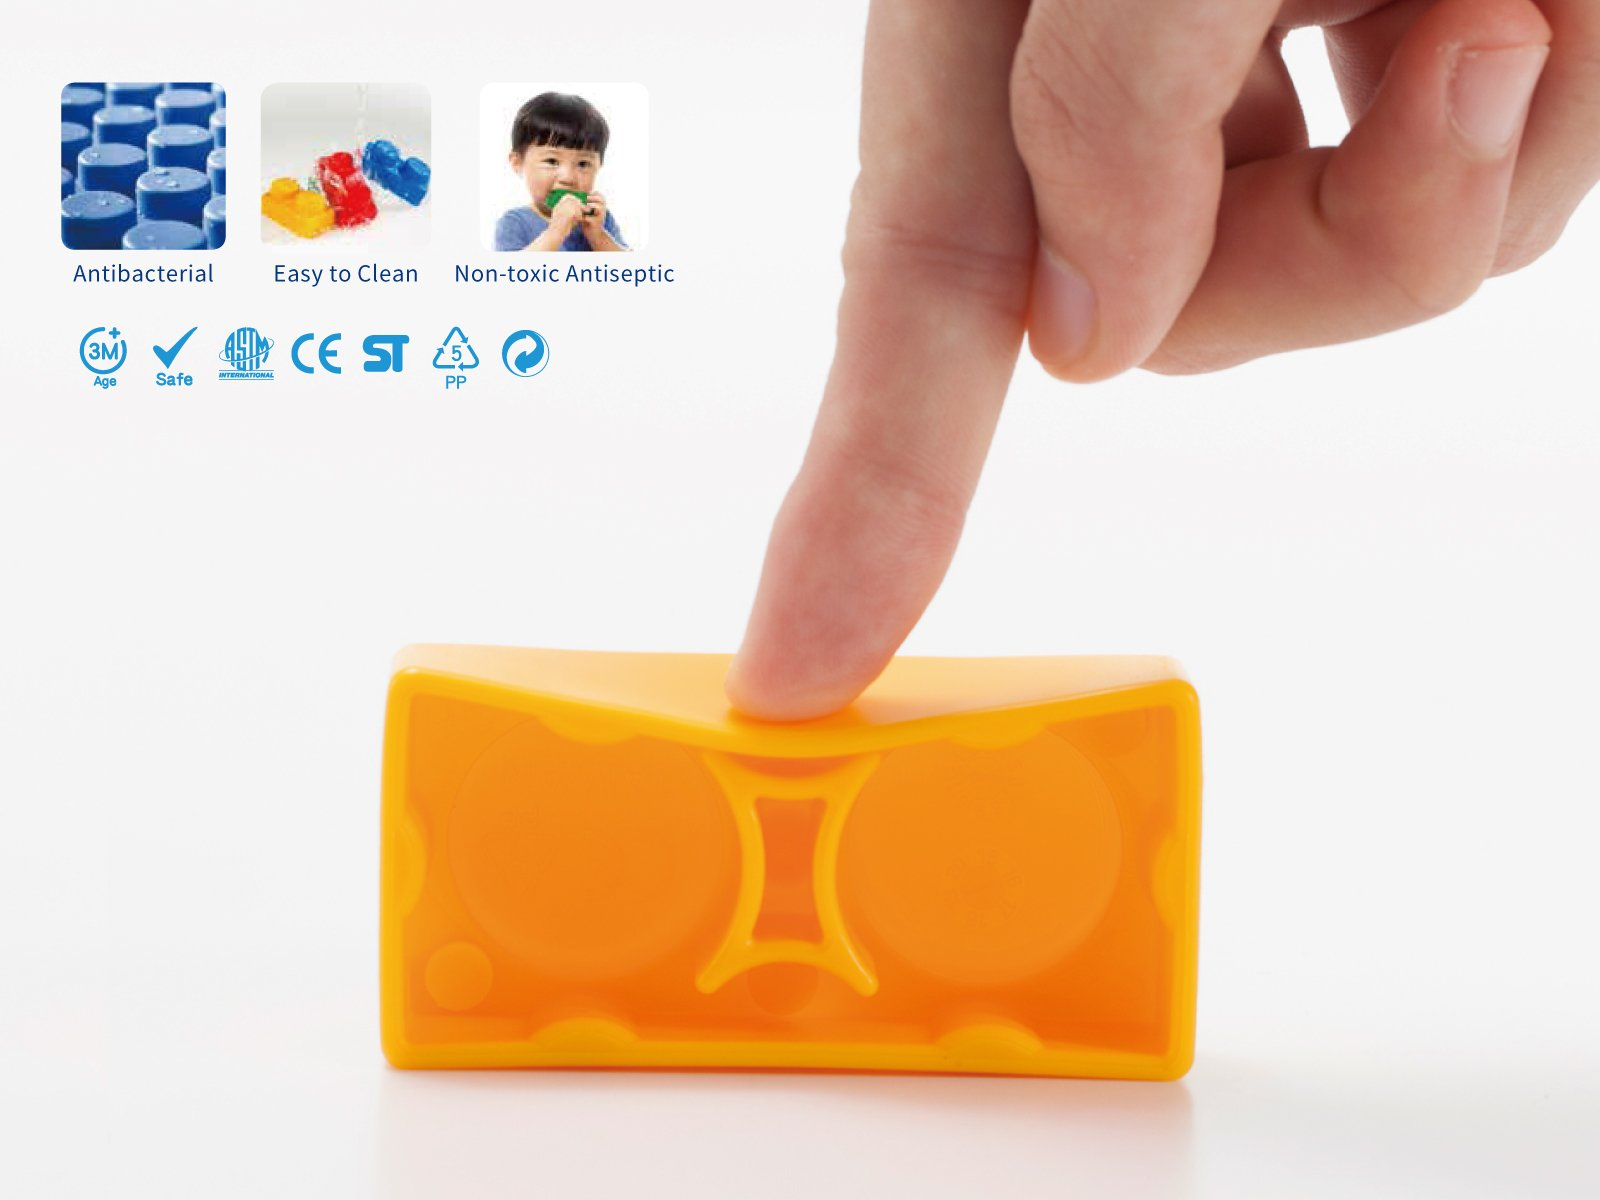 UNiPLAY Soft Building Blocks - Basic Series(36 PCS), Educational and Creative Toys, Food Grade Material(Antibacterial), Non-Toxic,100%SAFE for Kids, Toddlers, Baby, Preschoolers by UNiPLAY (Image #7)